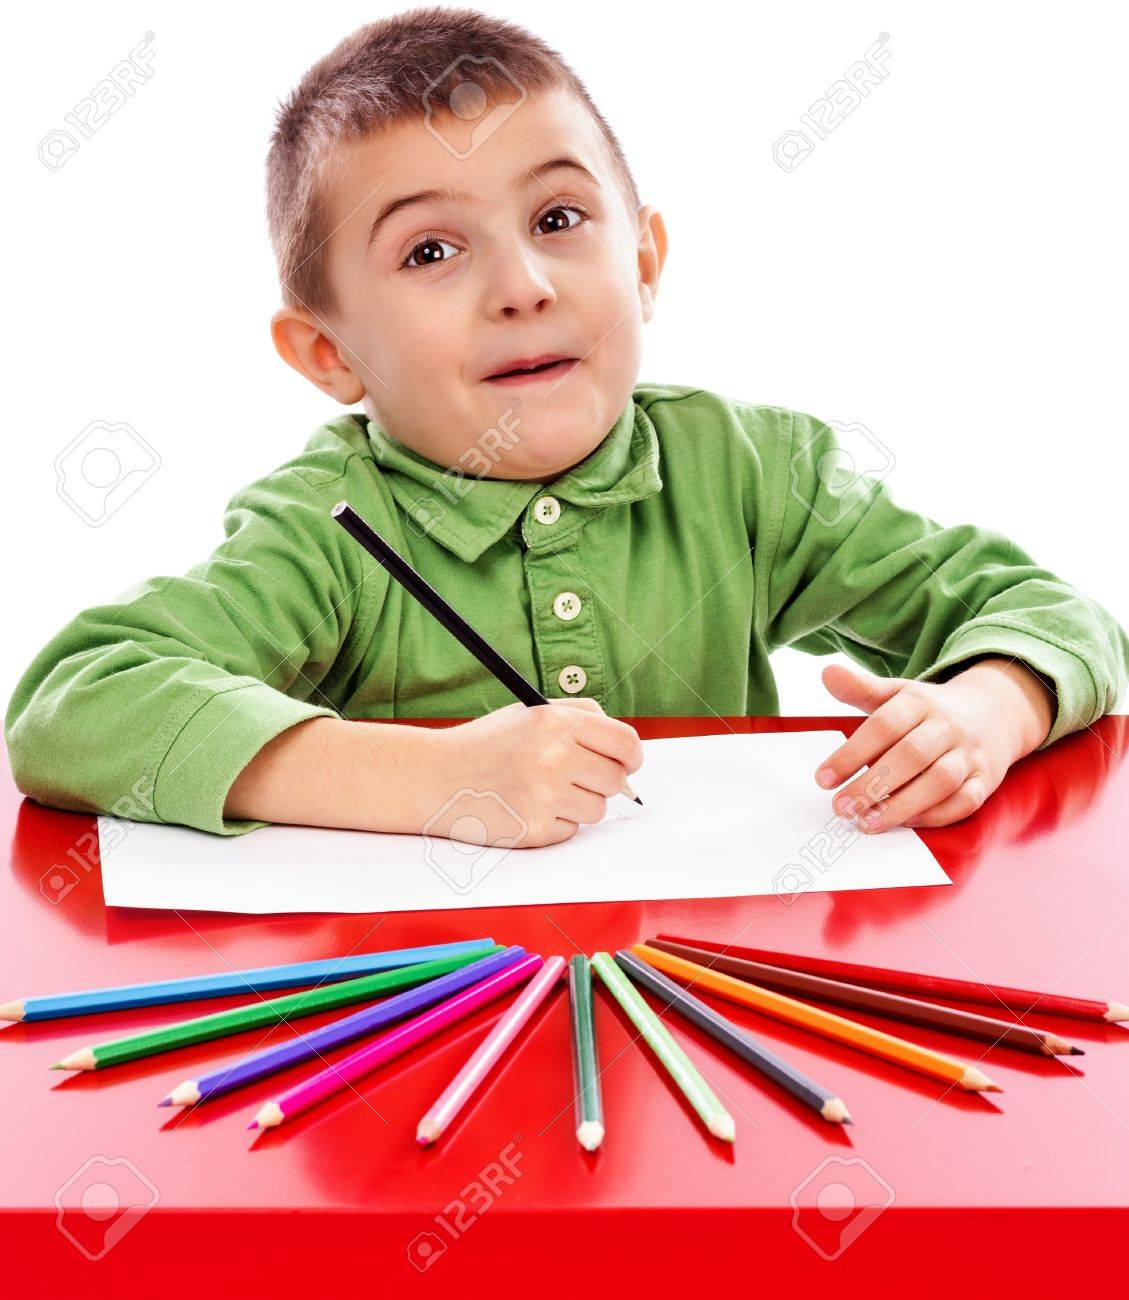 Happy Little Boy At The Table Drawing With Crayons Isolated On White Stock Photo